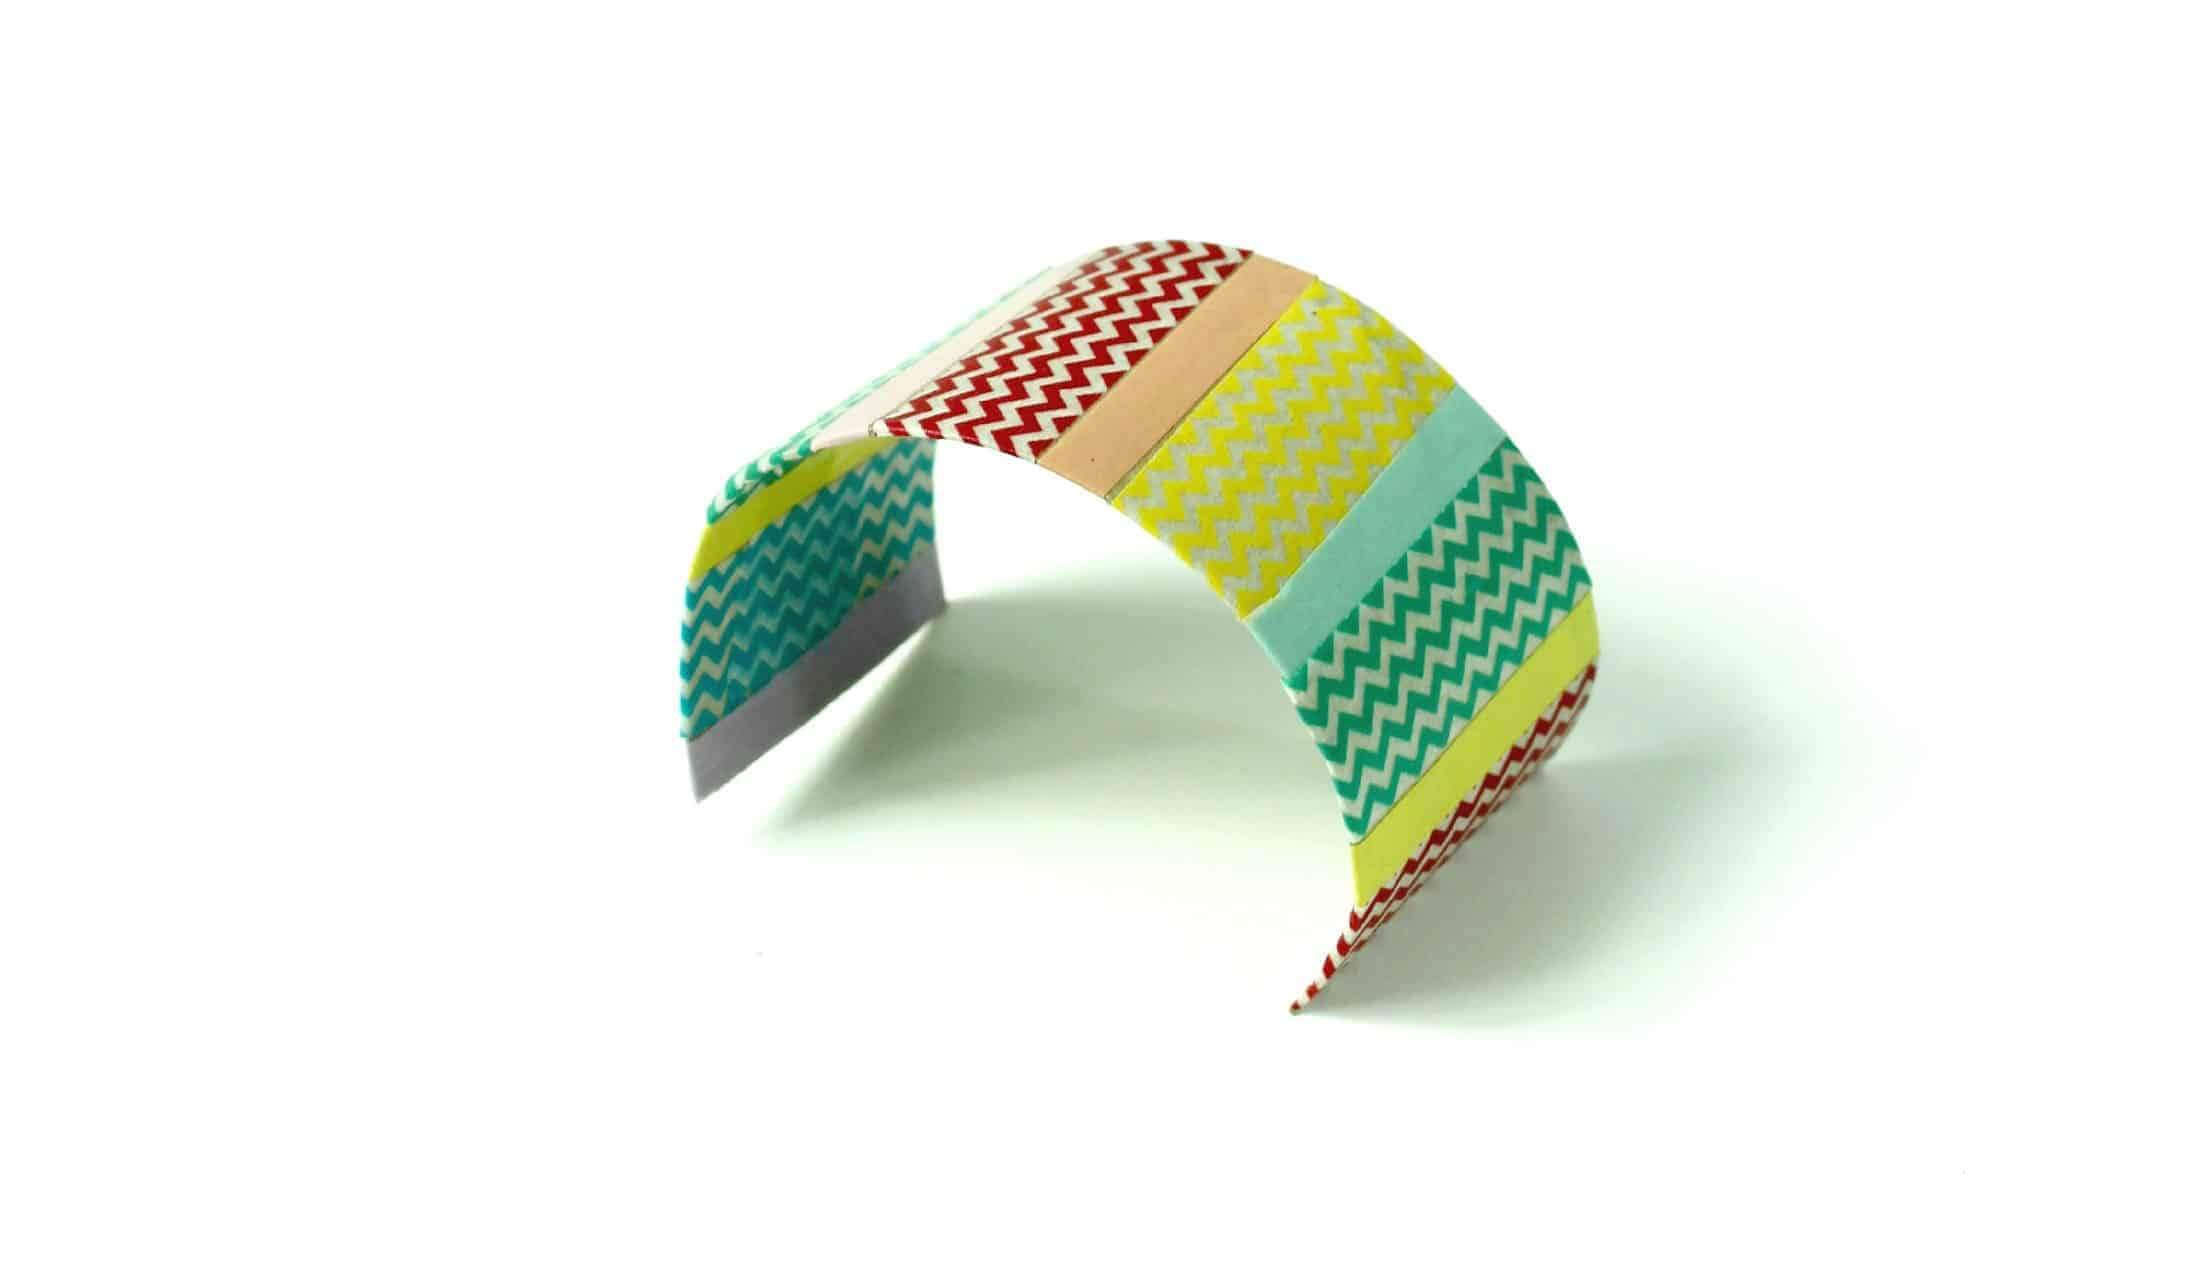 Looking for an easy homemade Mother's Day gift ideas? This Washi Tape cuff bracelet is pretty yet takes just a few minutes to craft! Easy enough for kids!